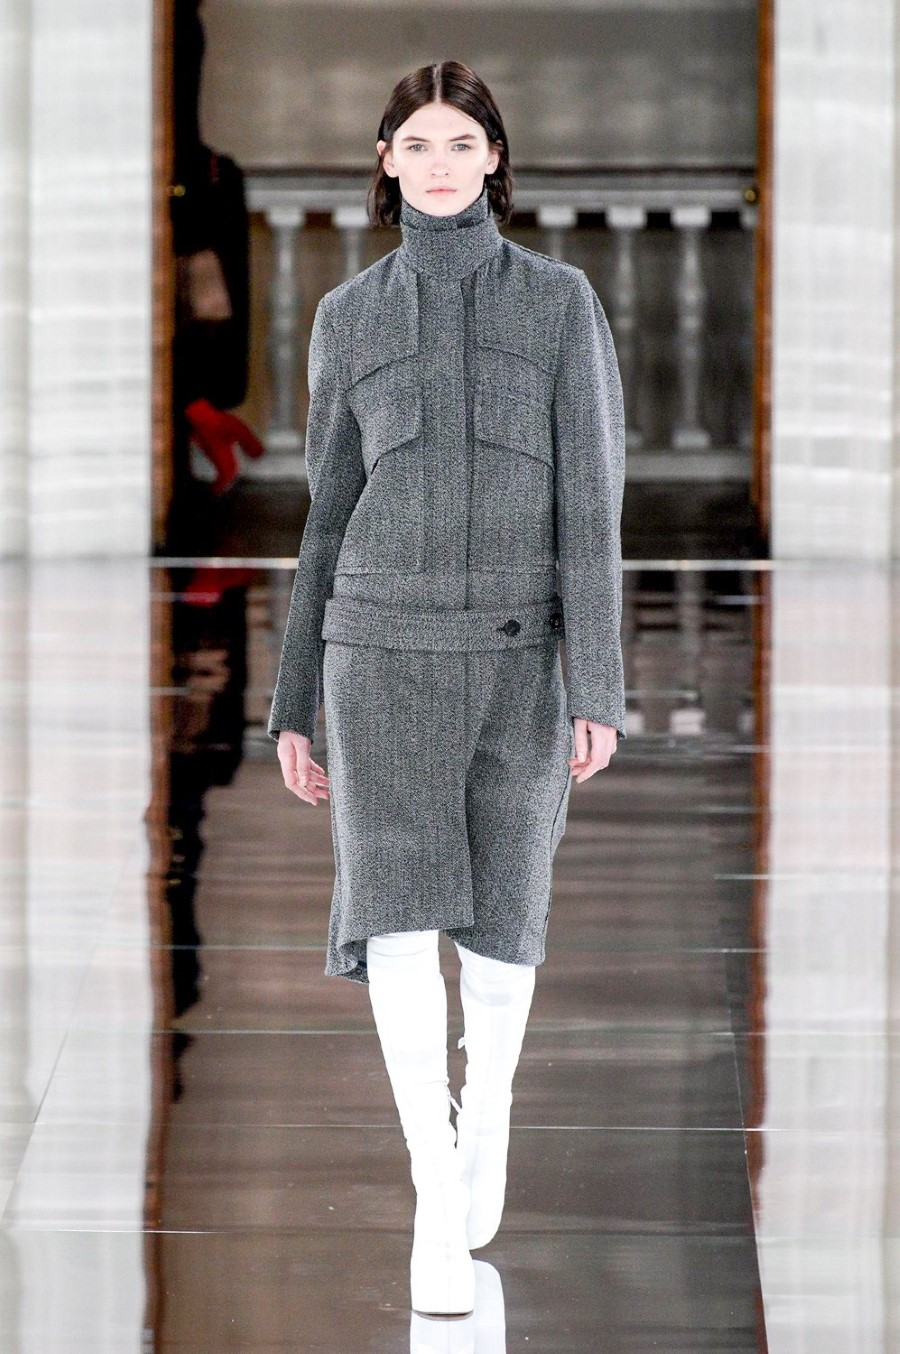 Victoria Beckham - Fall Winter 2020 - London Fashion WeekVictoria Beckham - Fall Winter 2020 - London Fashion Week